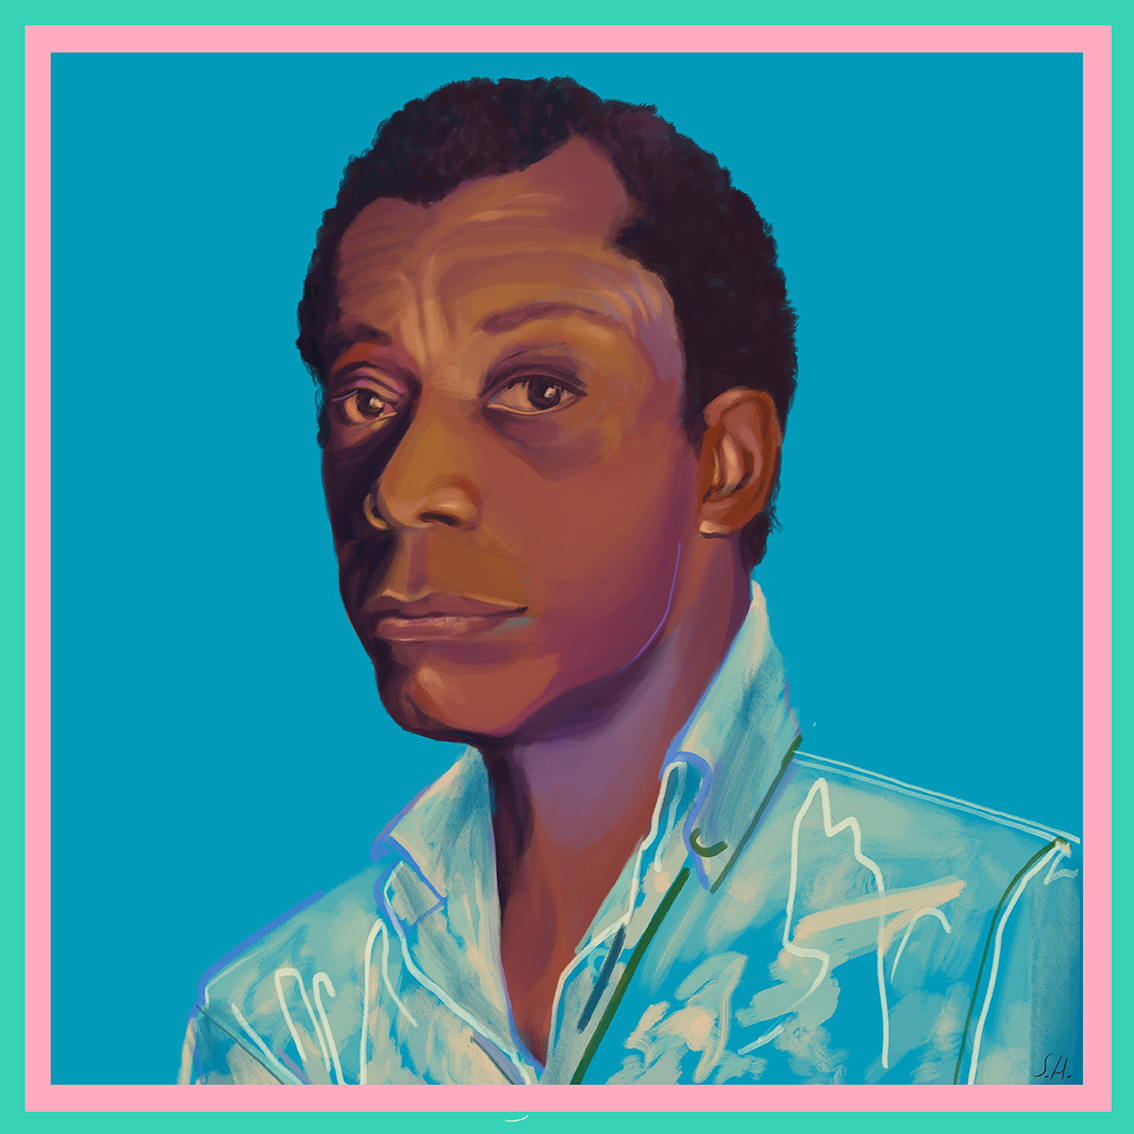 JamesBaldwin_Portrait_Illustration_SpirosHalaris_2019.jpg